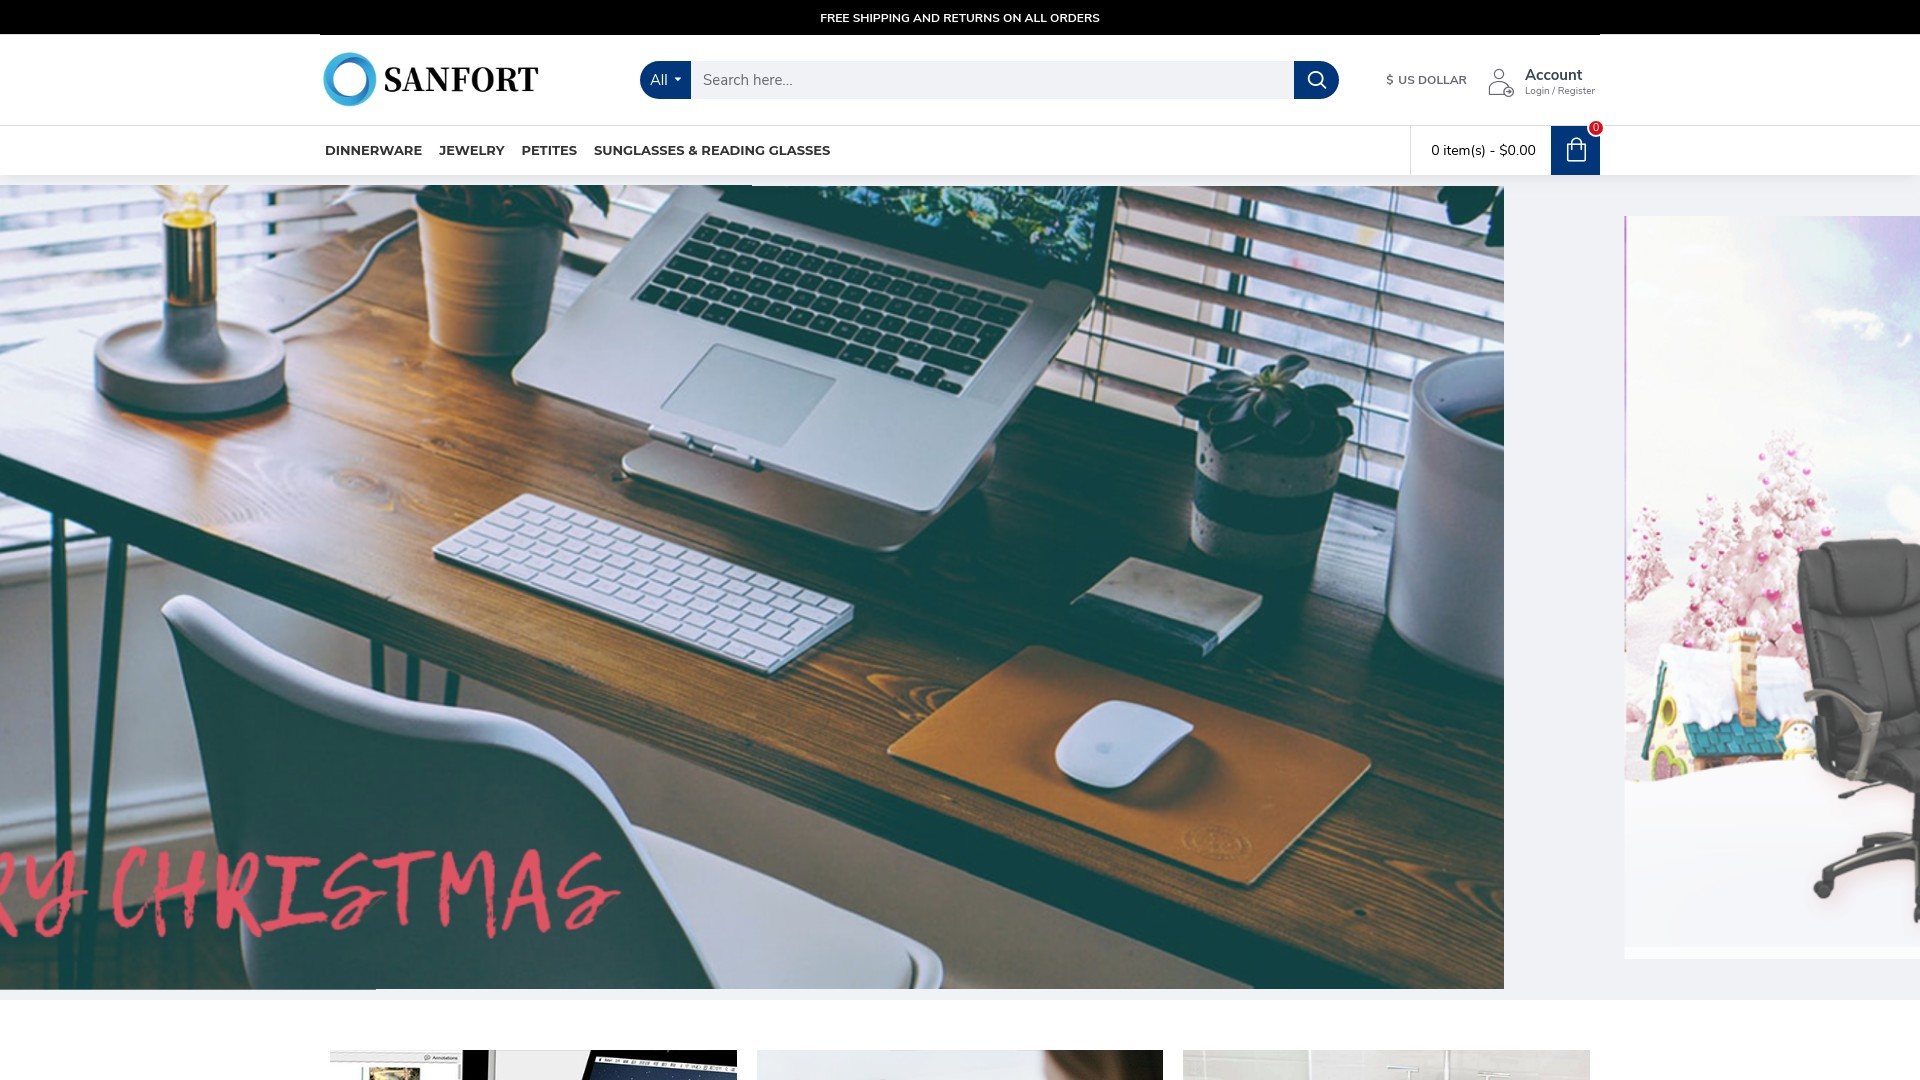 Is Sanfort a Scam? See the Review of the Online Store